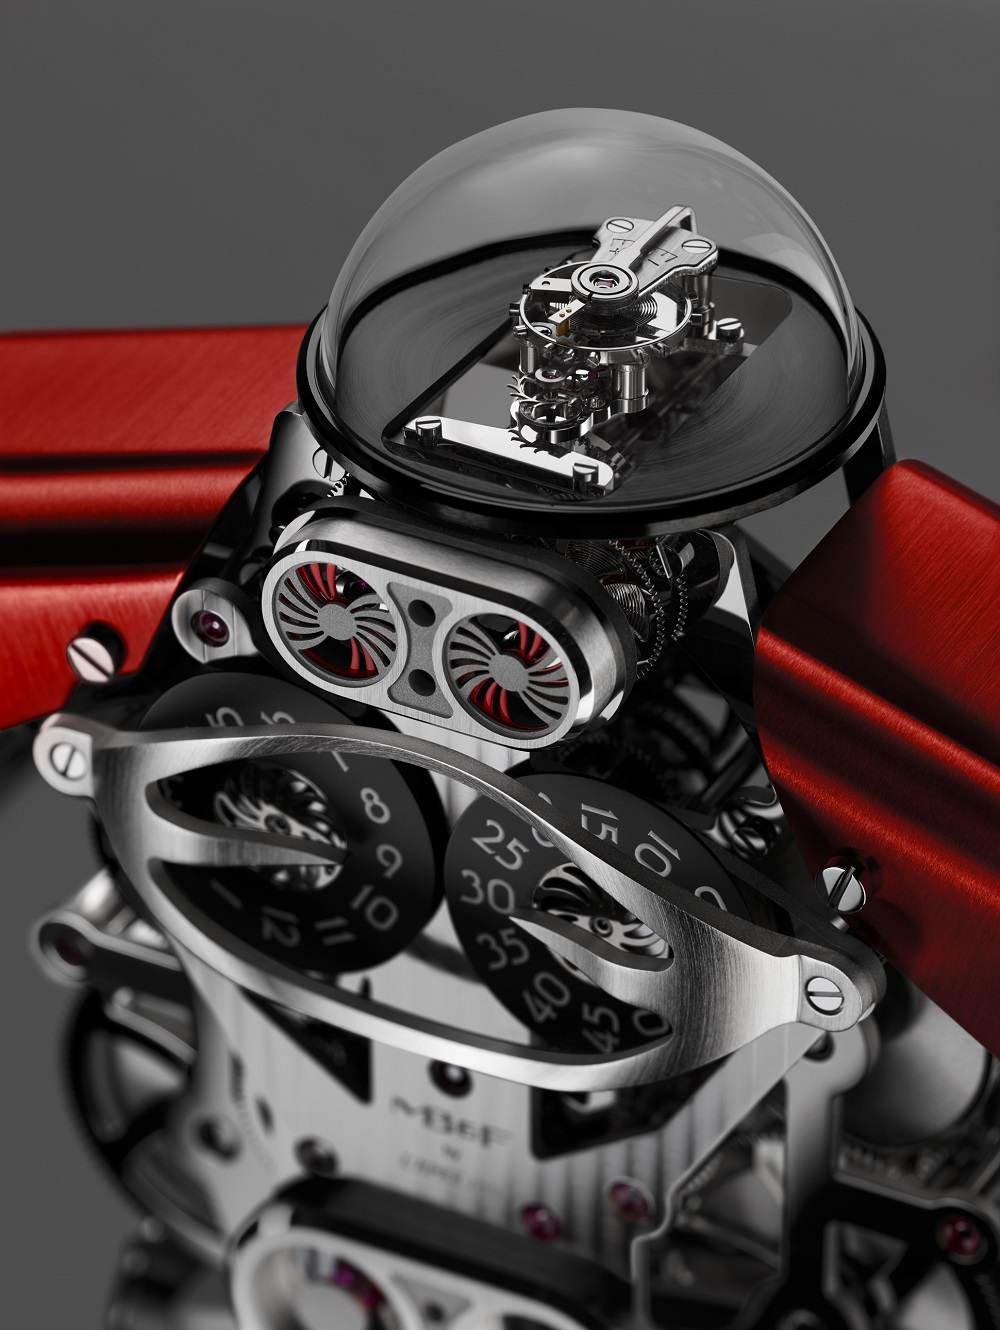 Only Watch 2015: MB&F Melchior